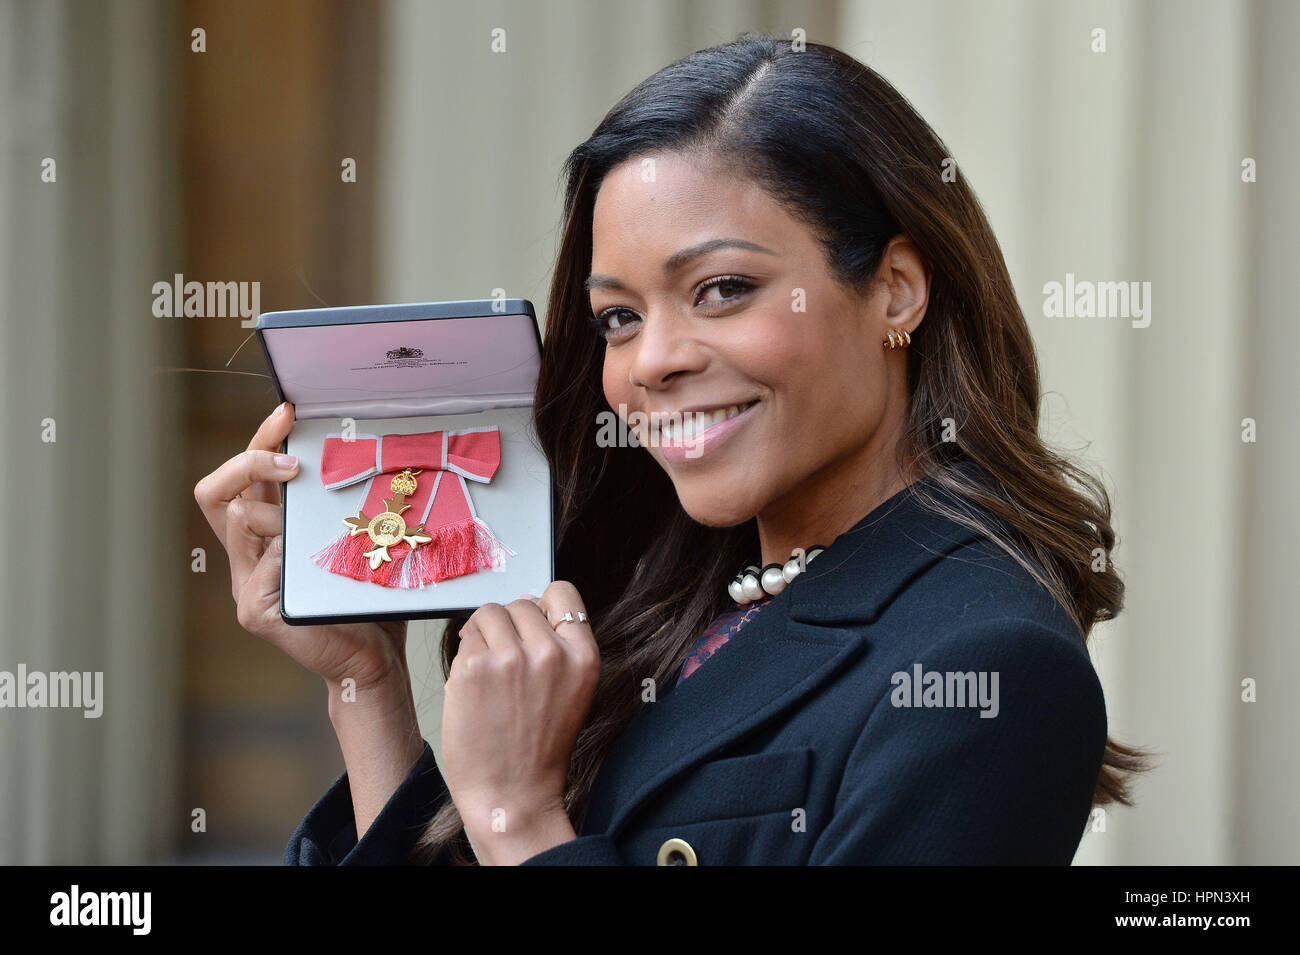 James Bond star Naomie Harris at Buckingham Palace, London, after receiving her OBE medal from Queen Elizabeth II. - Stock Image